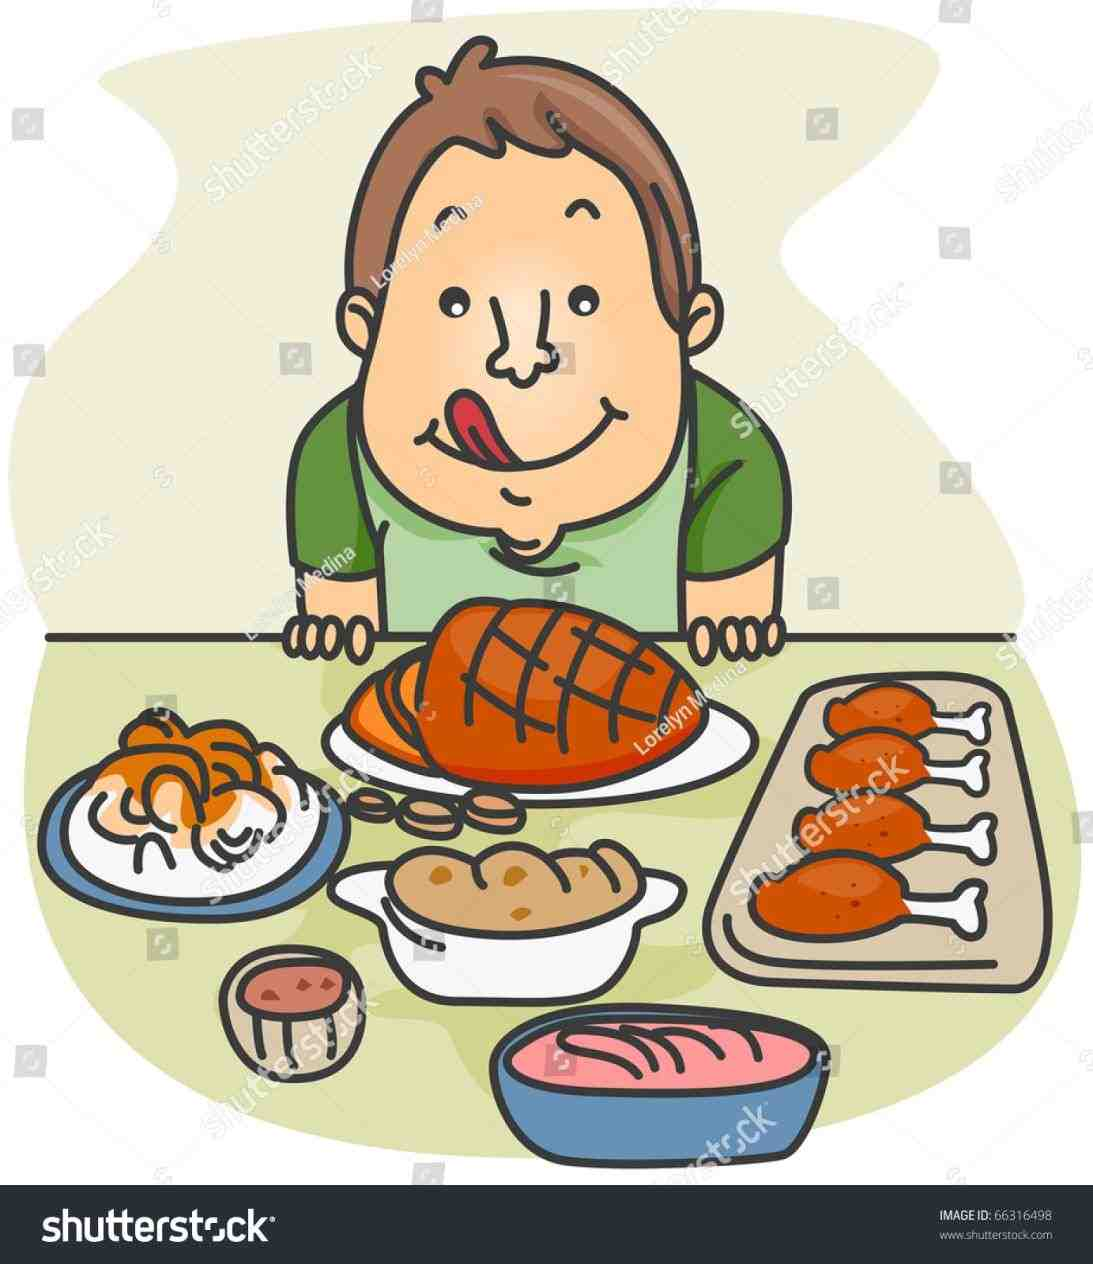 free rhshutterstockcom fat Man Eating Food Clipart man.jpg